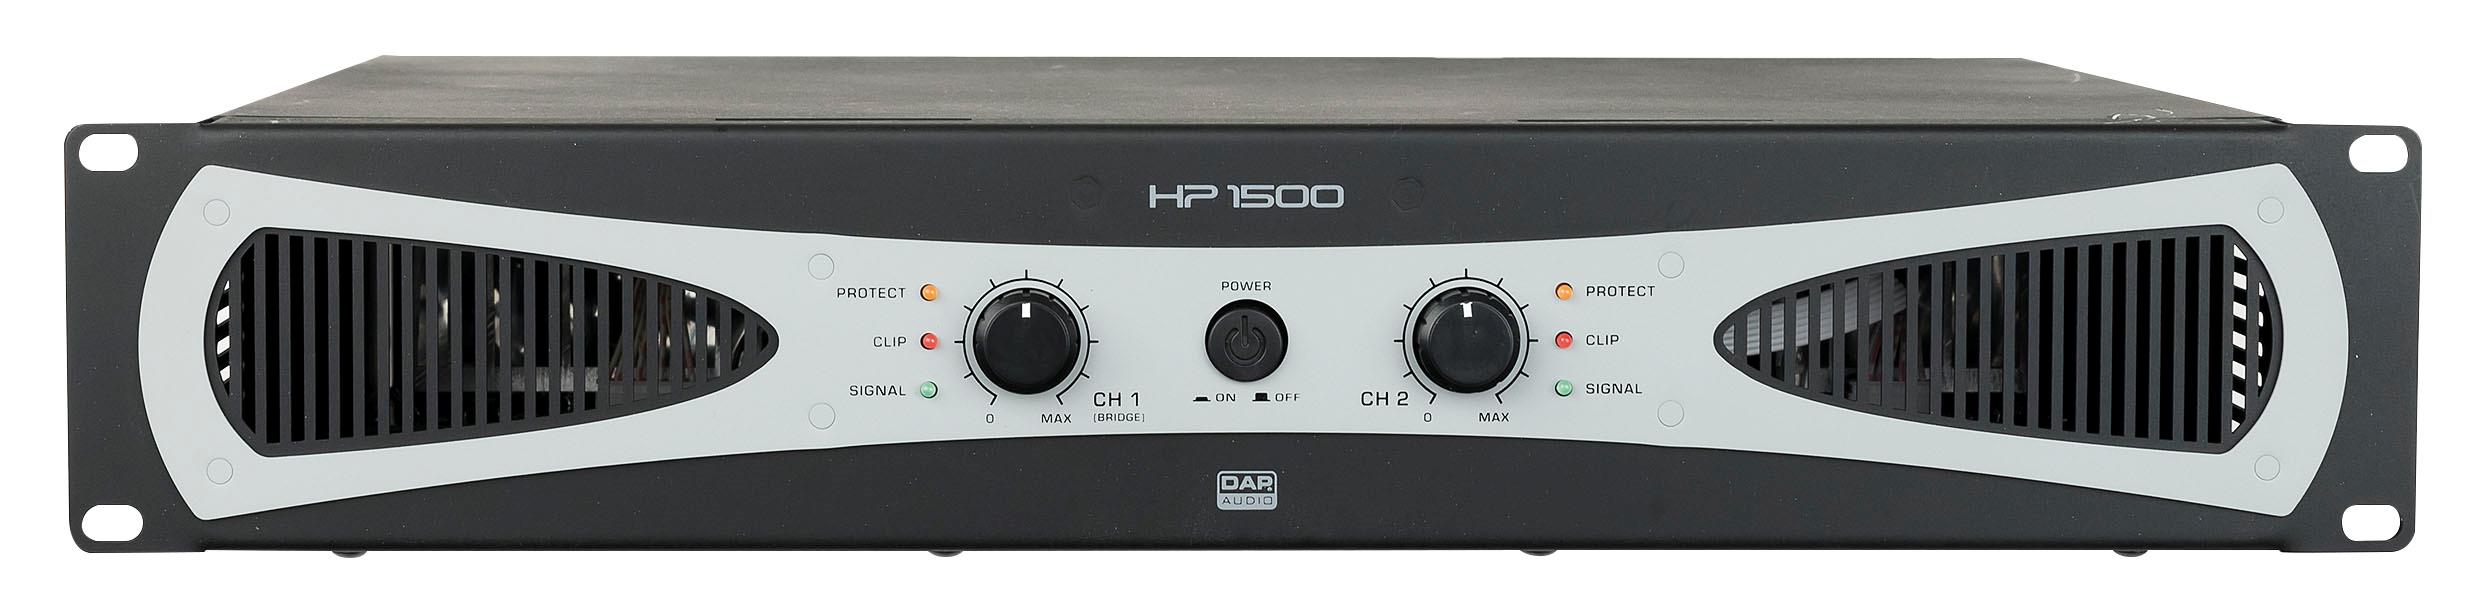 DAP HP-1500 2U 2X750w Amplifier